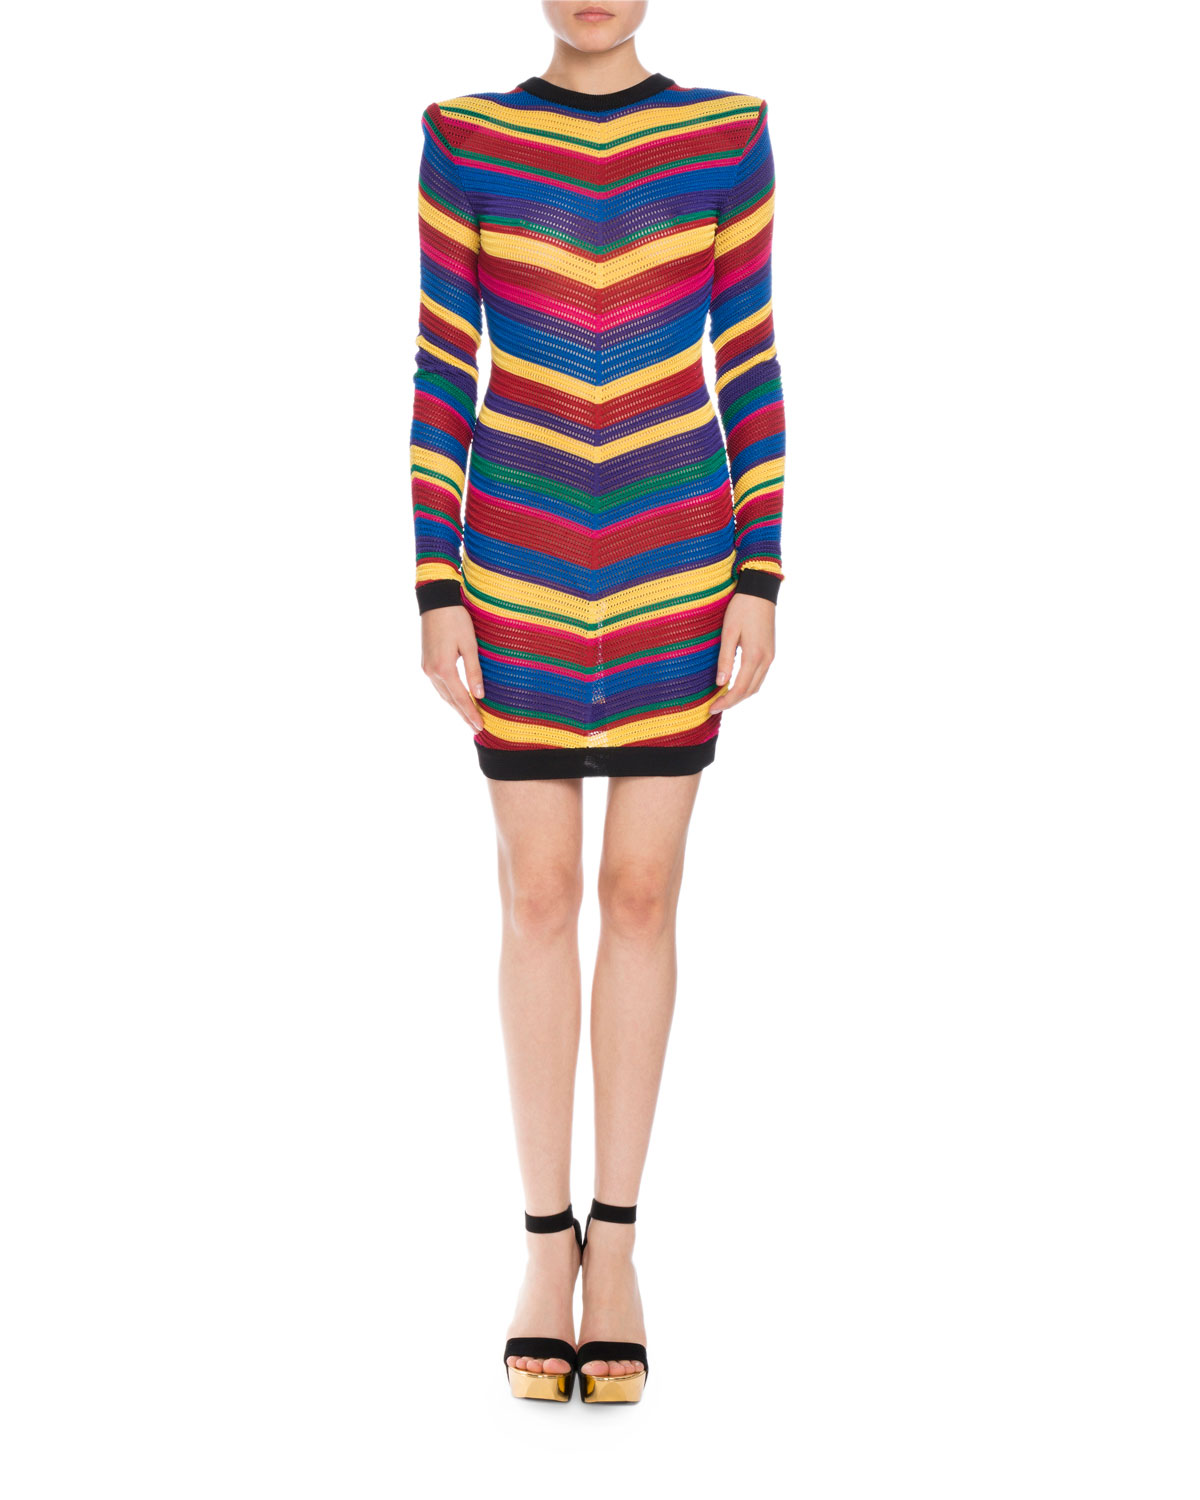 Long-Sleeve Chevron-Knit Dress, Multi